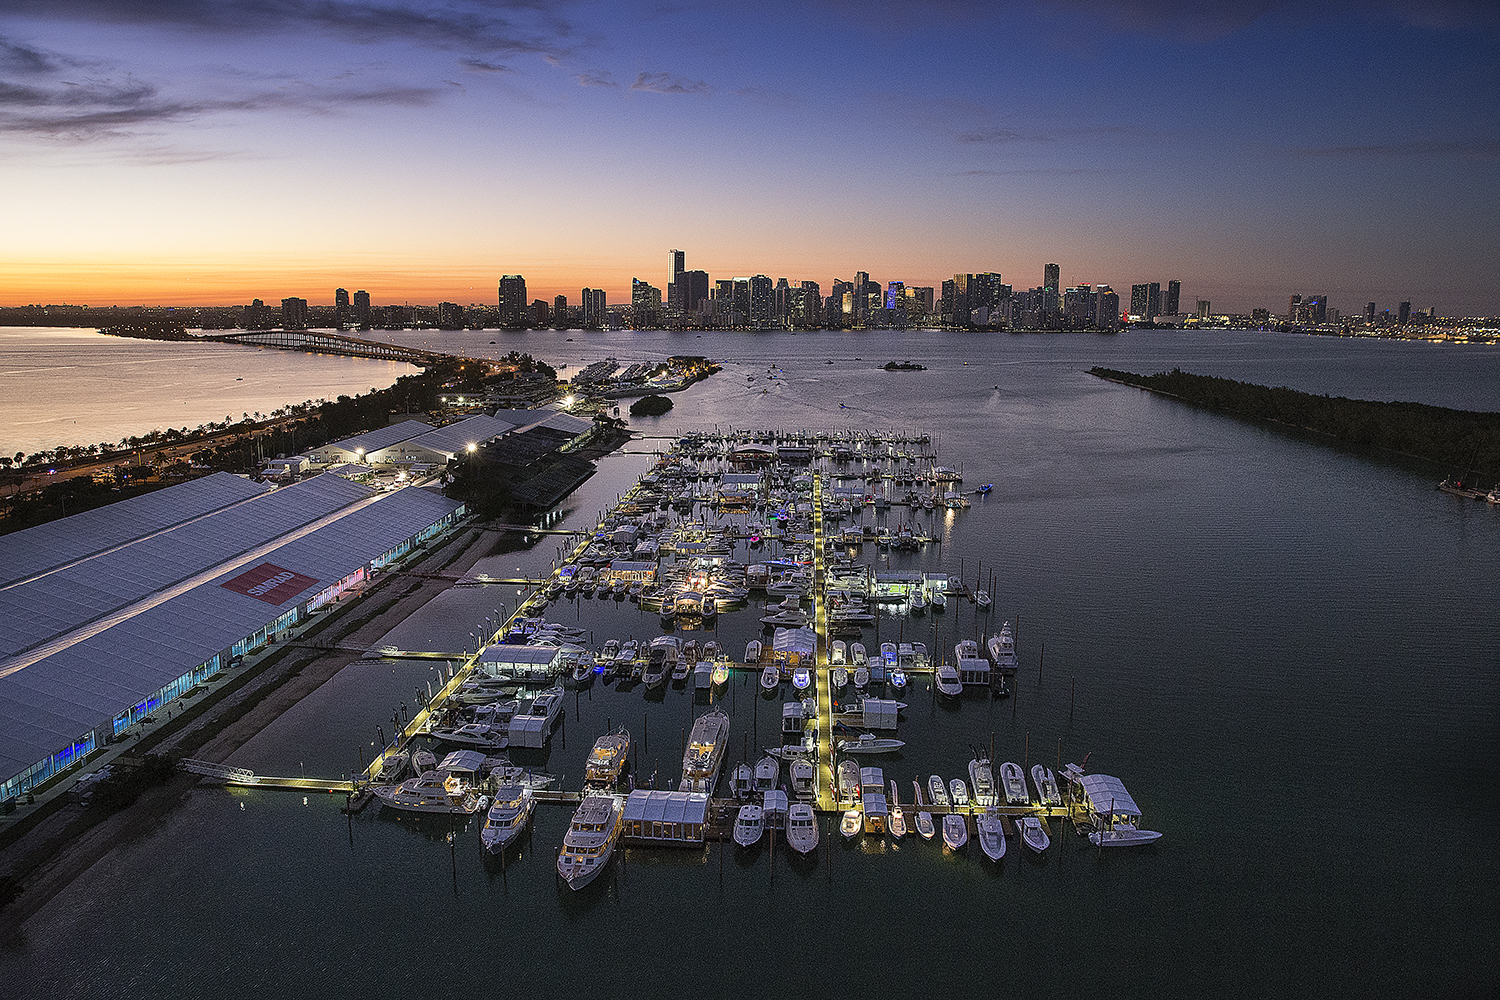 A photo of the 2019 Miami International Boat Show